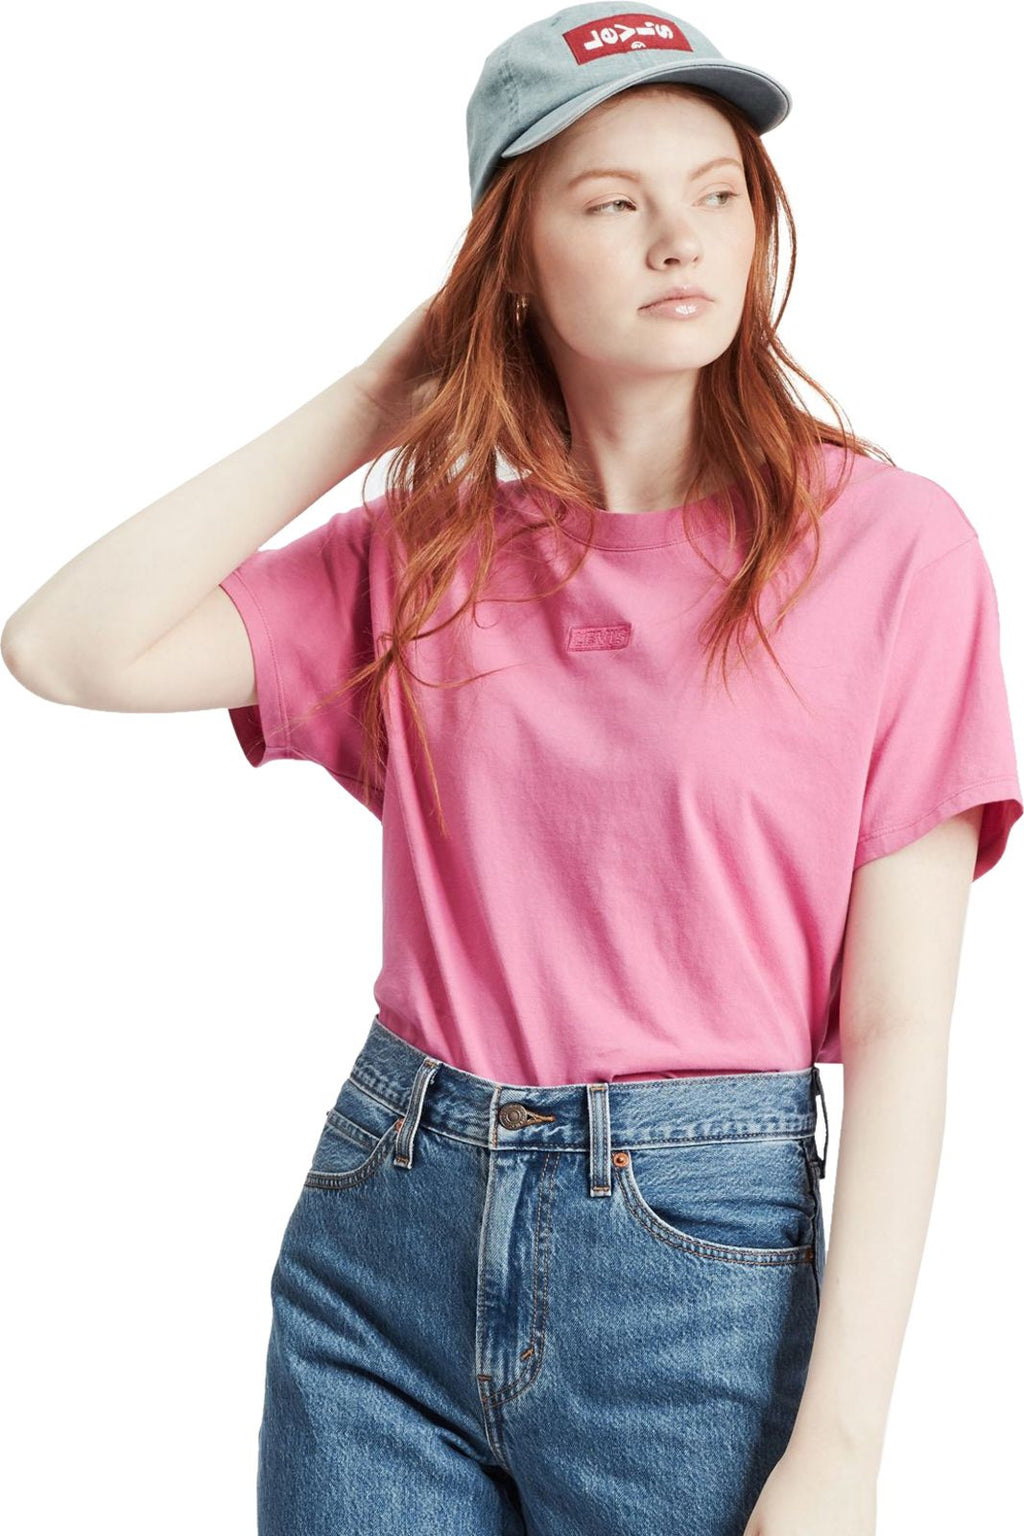 Levi's Women's Graphic Varsity T-Shirt Pink